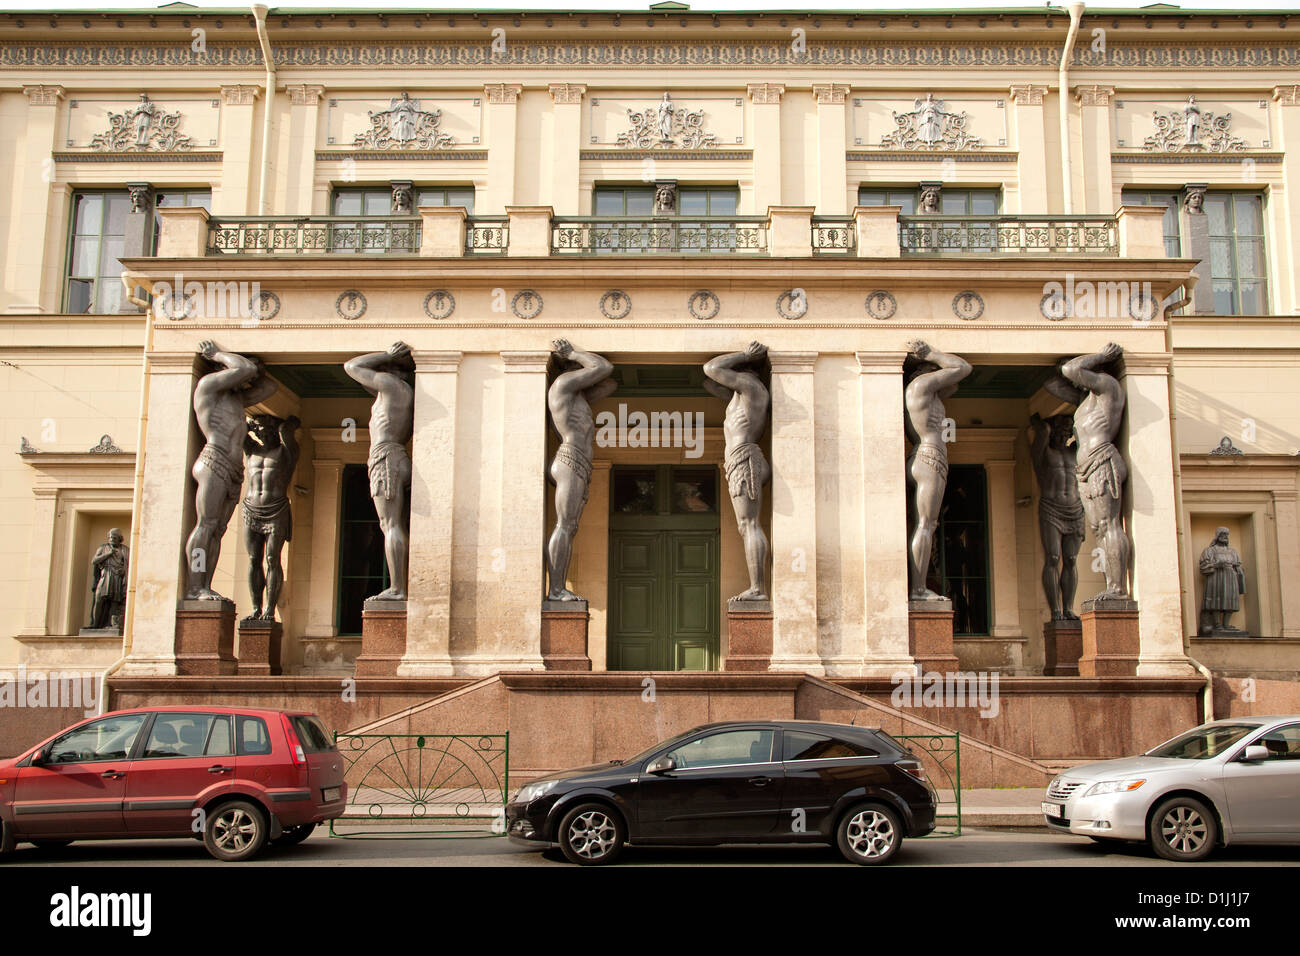 Atlantes statues in the portico of the New Hermitage building in Saint Petersburg, Russia. - Stock Image